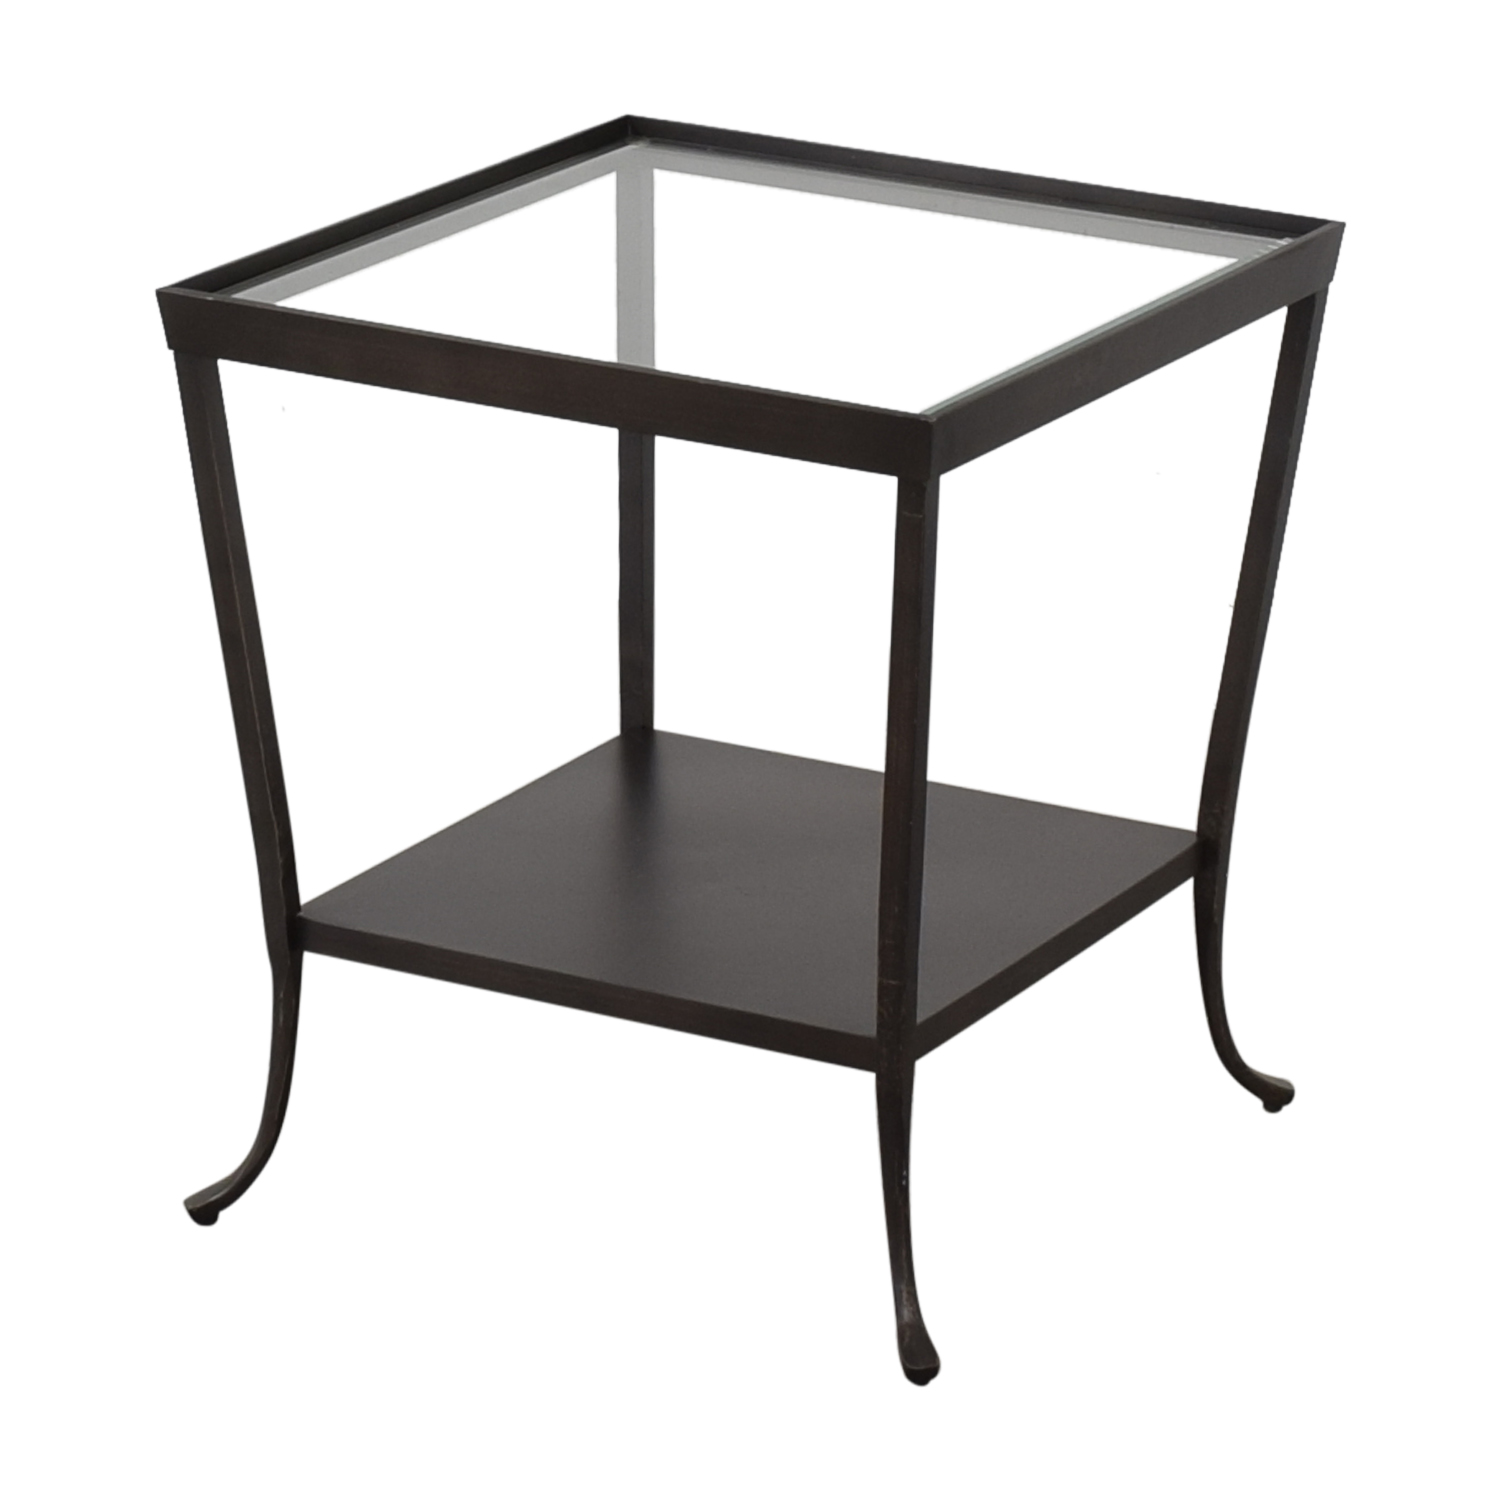 Crate & Barrel Crate & Barrel Side Table price